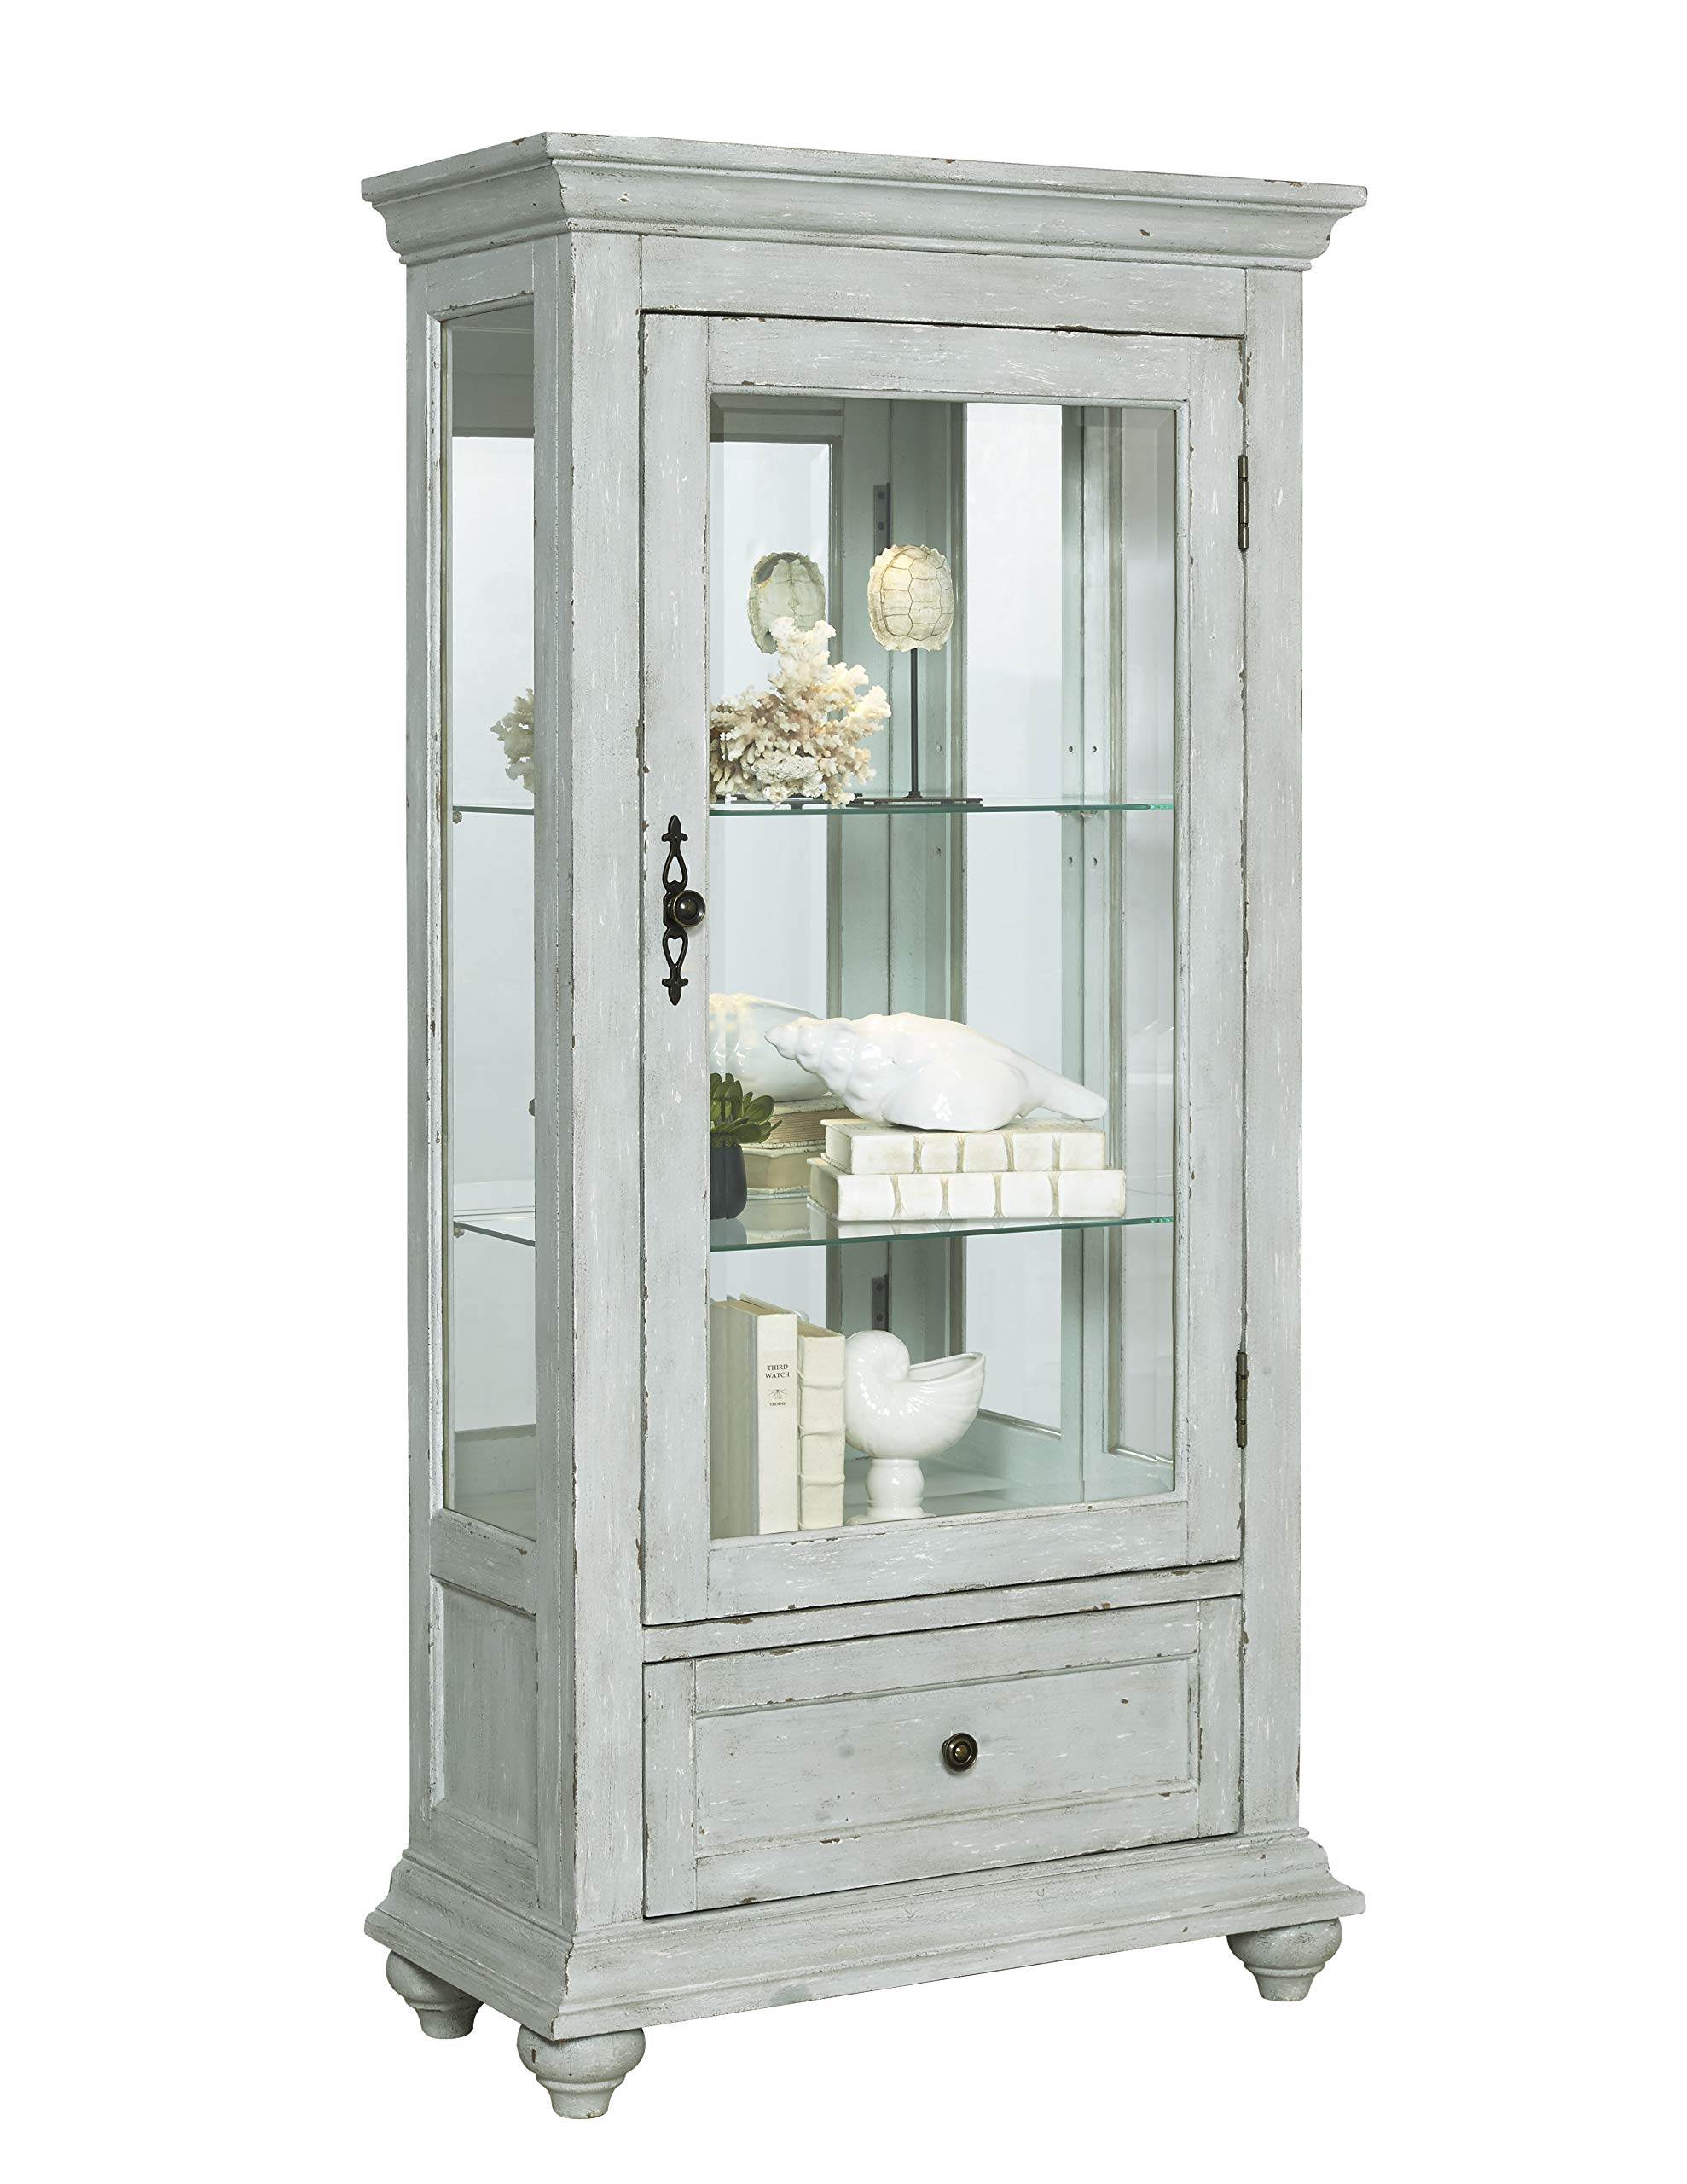 Pulaski  Traditional Antique 2 Shelves Curio Display Cabinet with Led Light, 30'' x 14'' x 60.5''